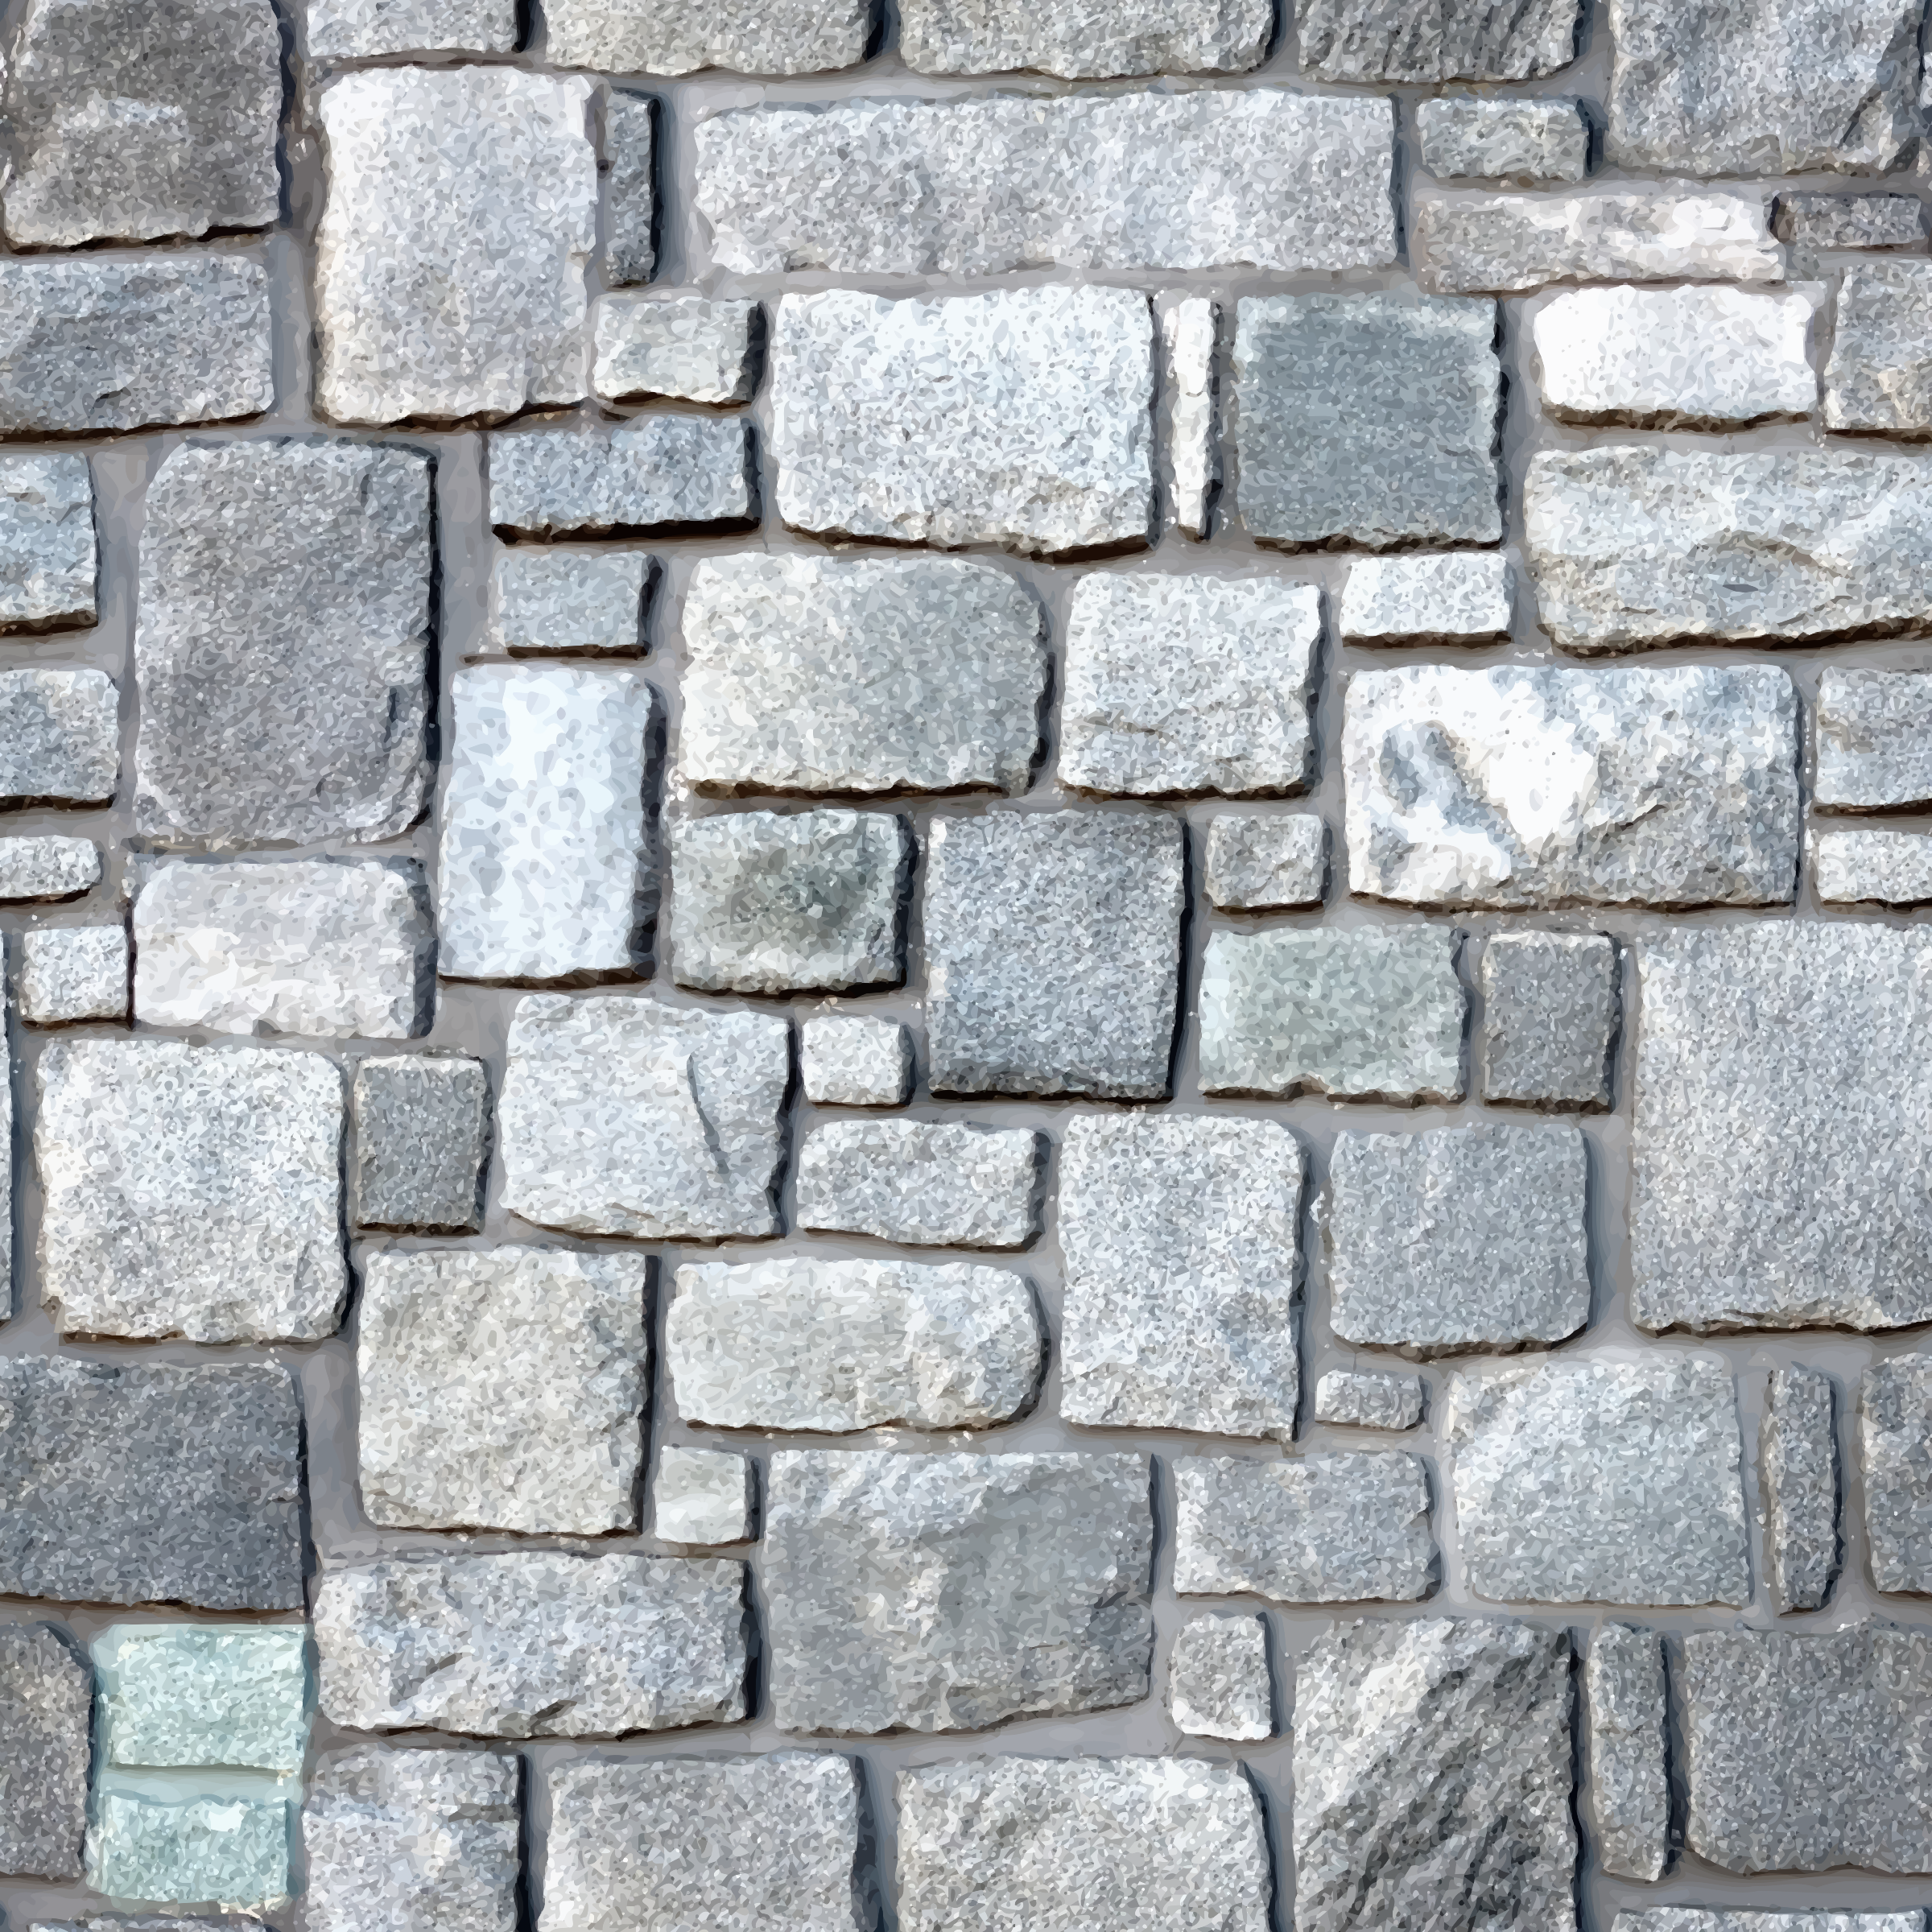 Irregular stone blocks by Firkin